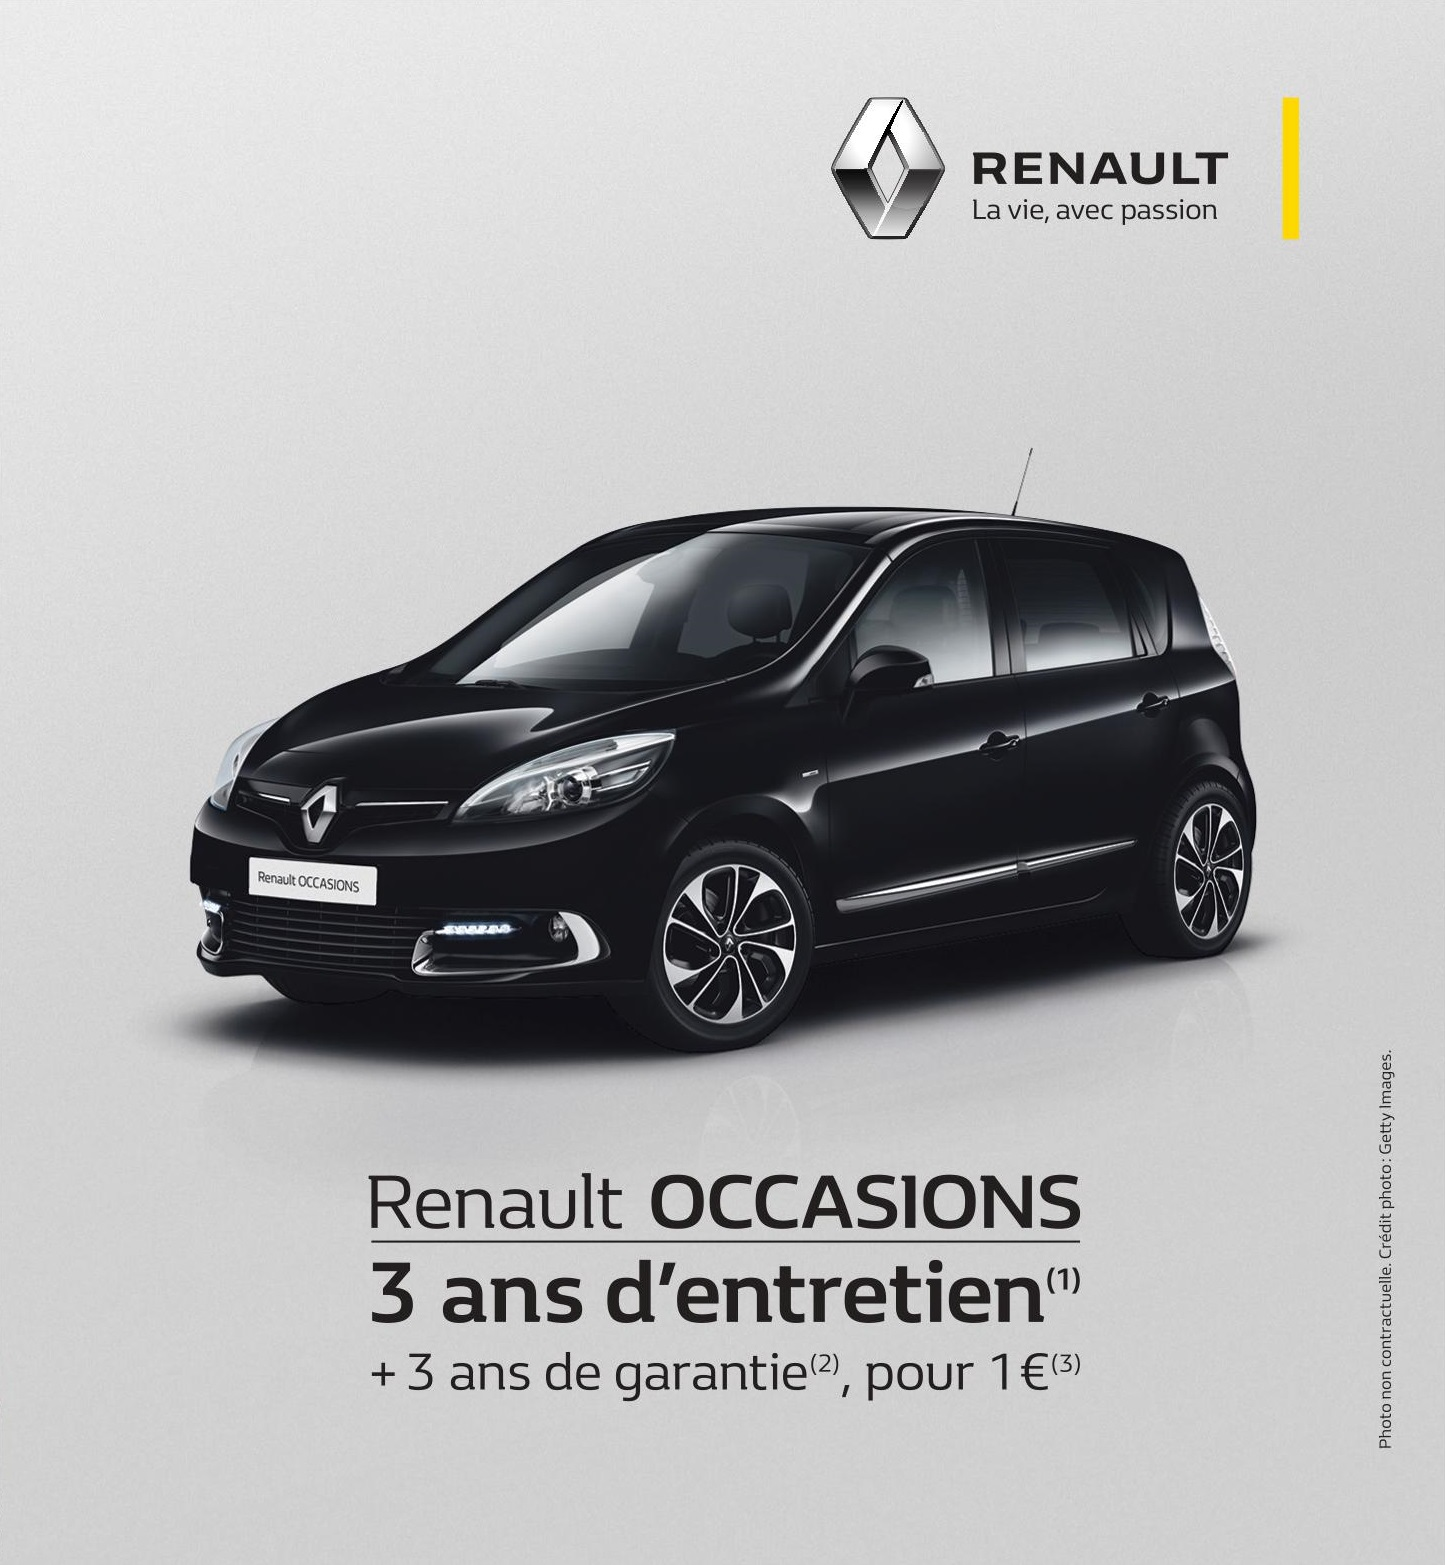 renault grand scenic occasion angers renault angers. Black Bedroom Furniture Sets. Home Design Ideas